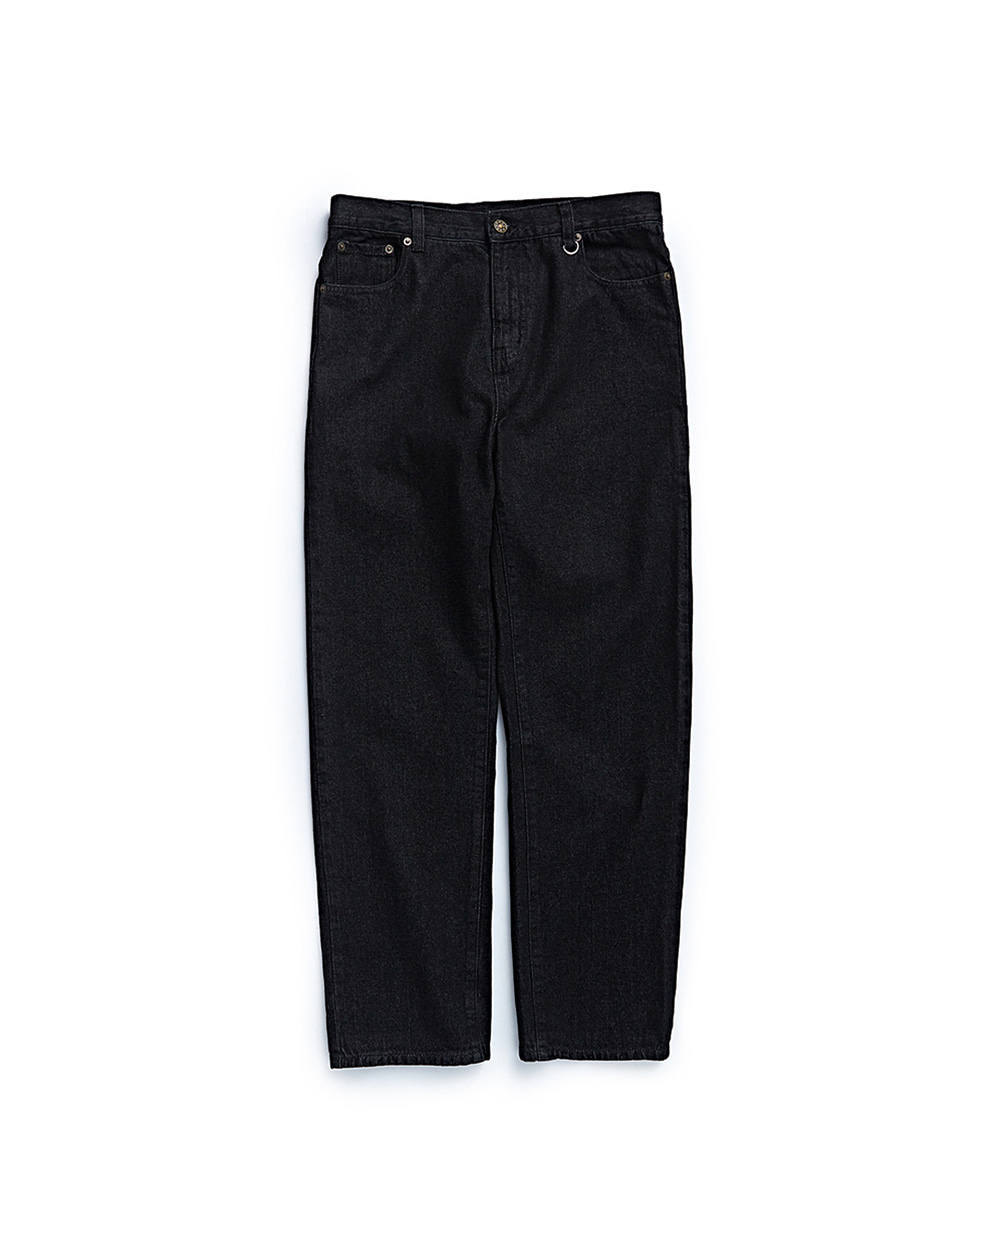 ALLSUNDAY JEANS TAPERED BLACK